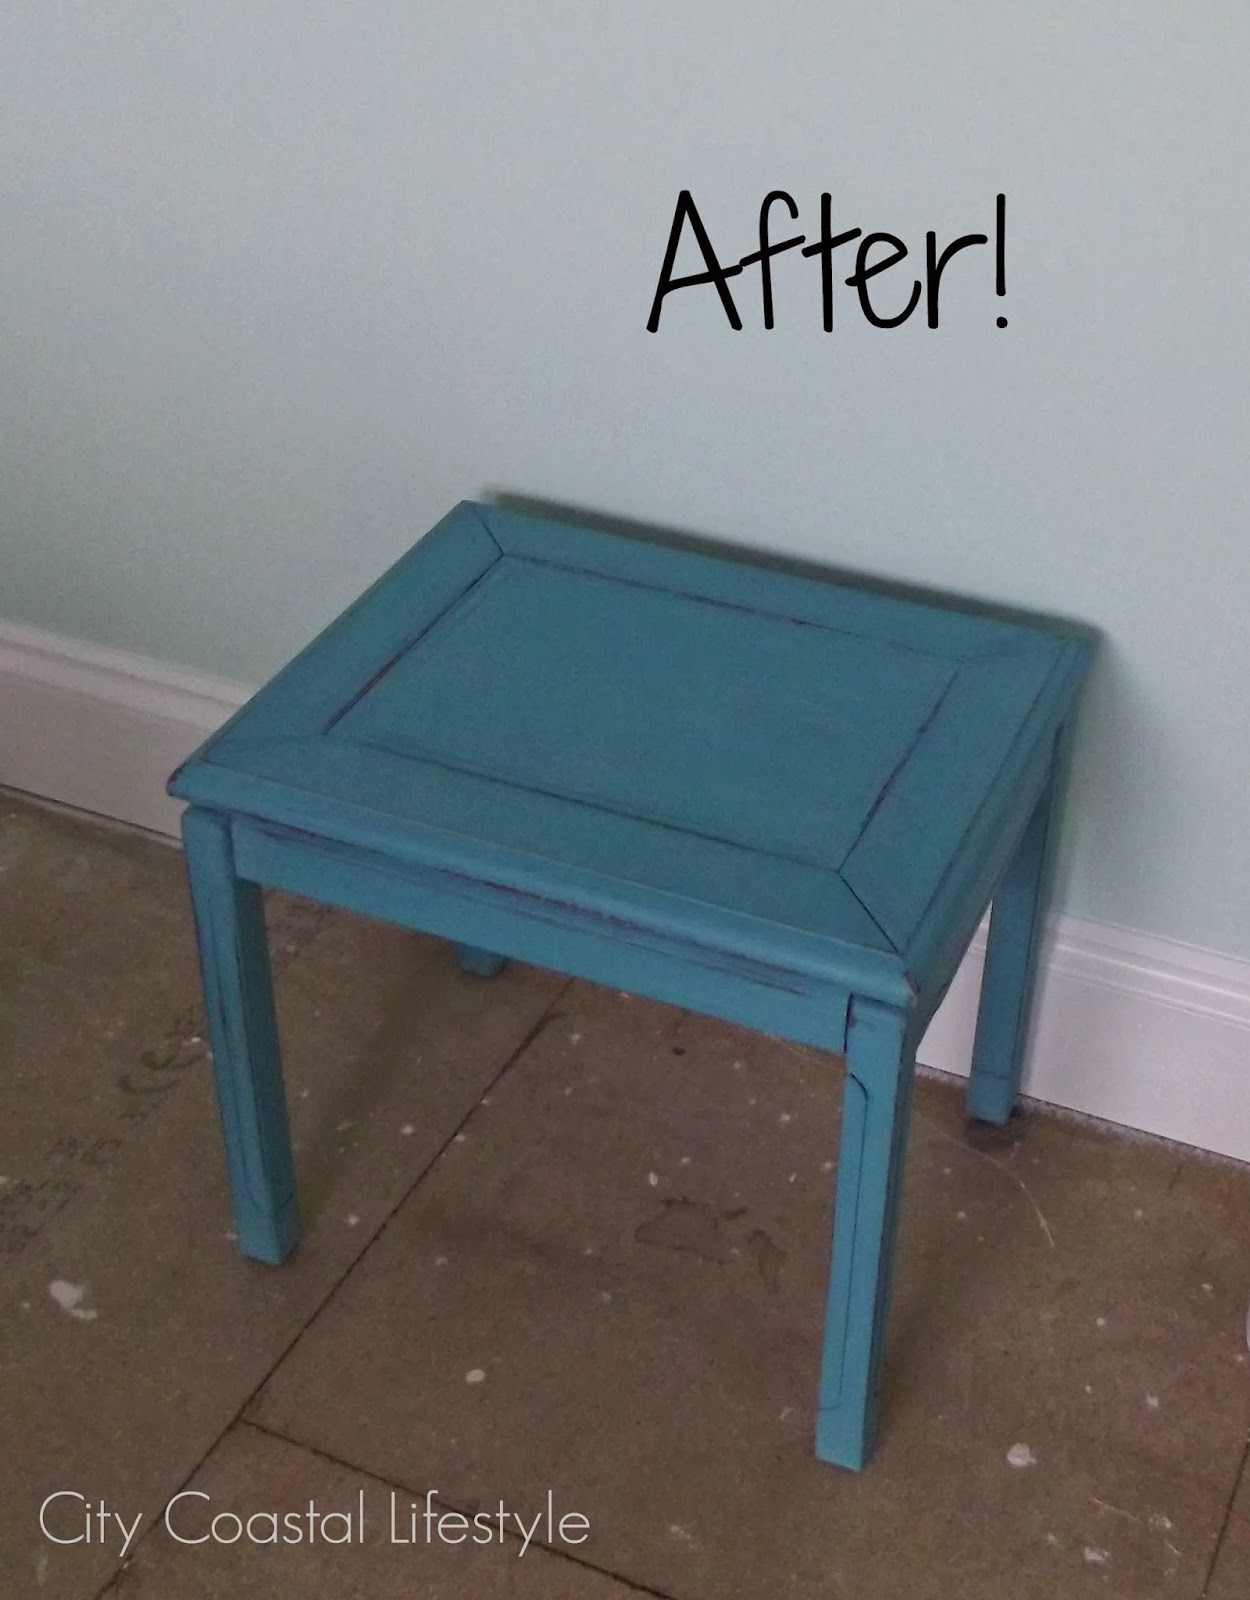 Furniture Painting - a revival